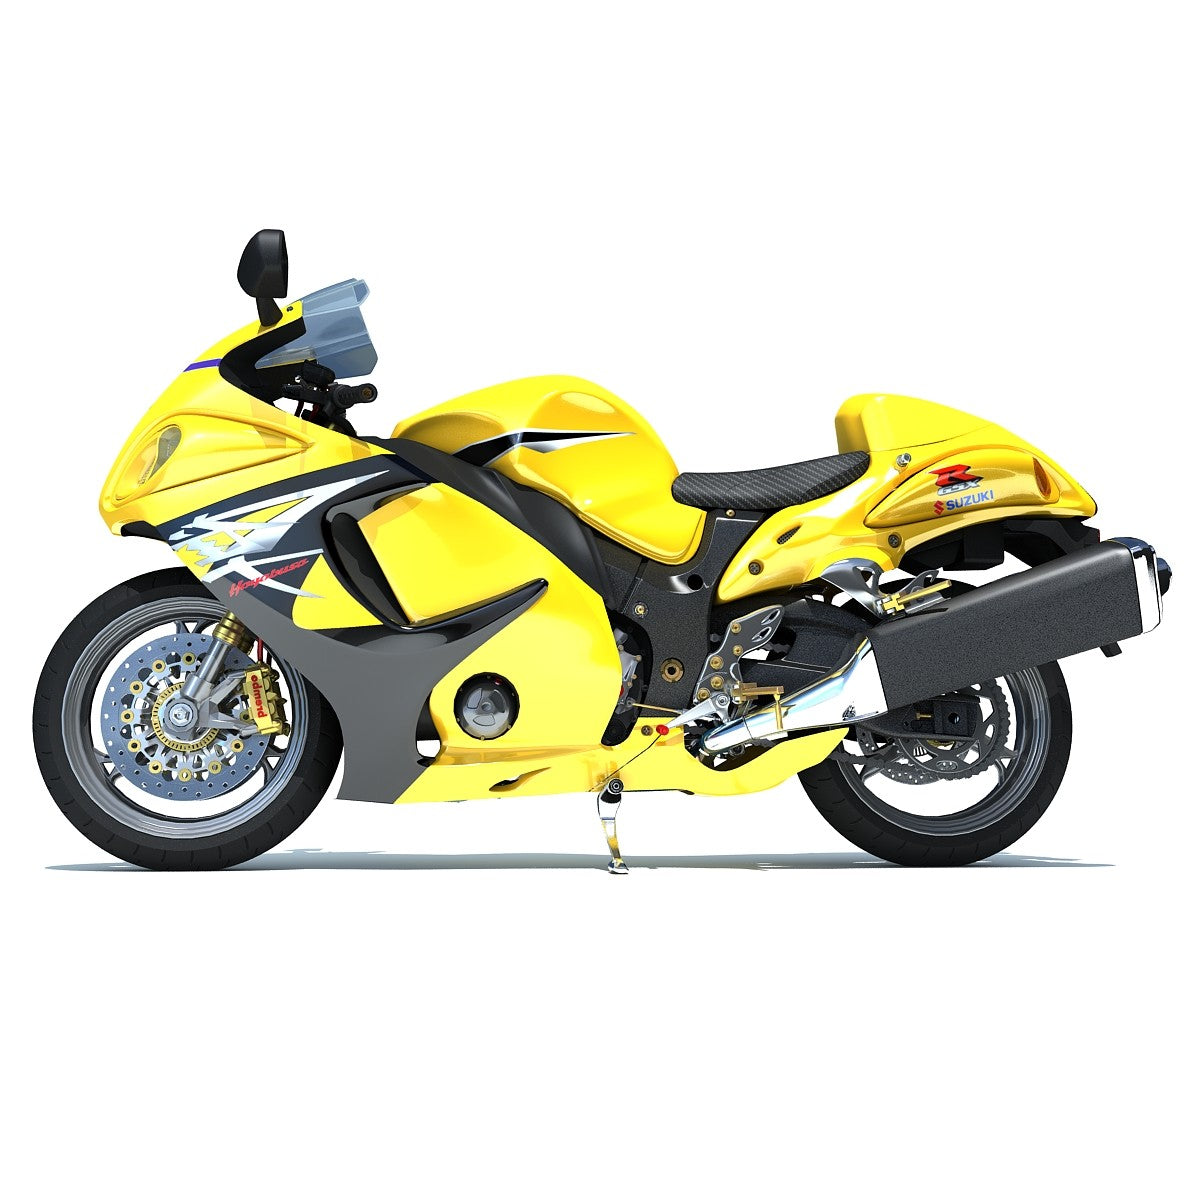 Suzuki Sport Motorcycle 3D Model